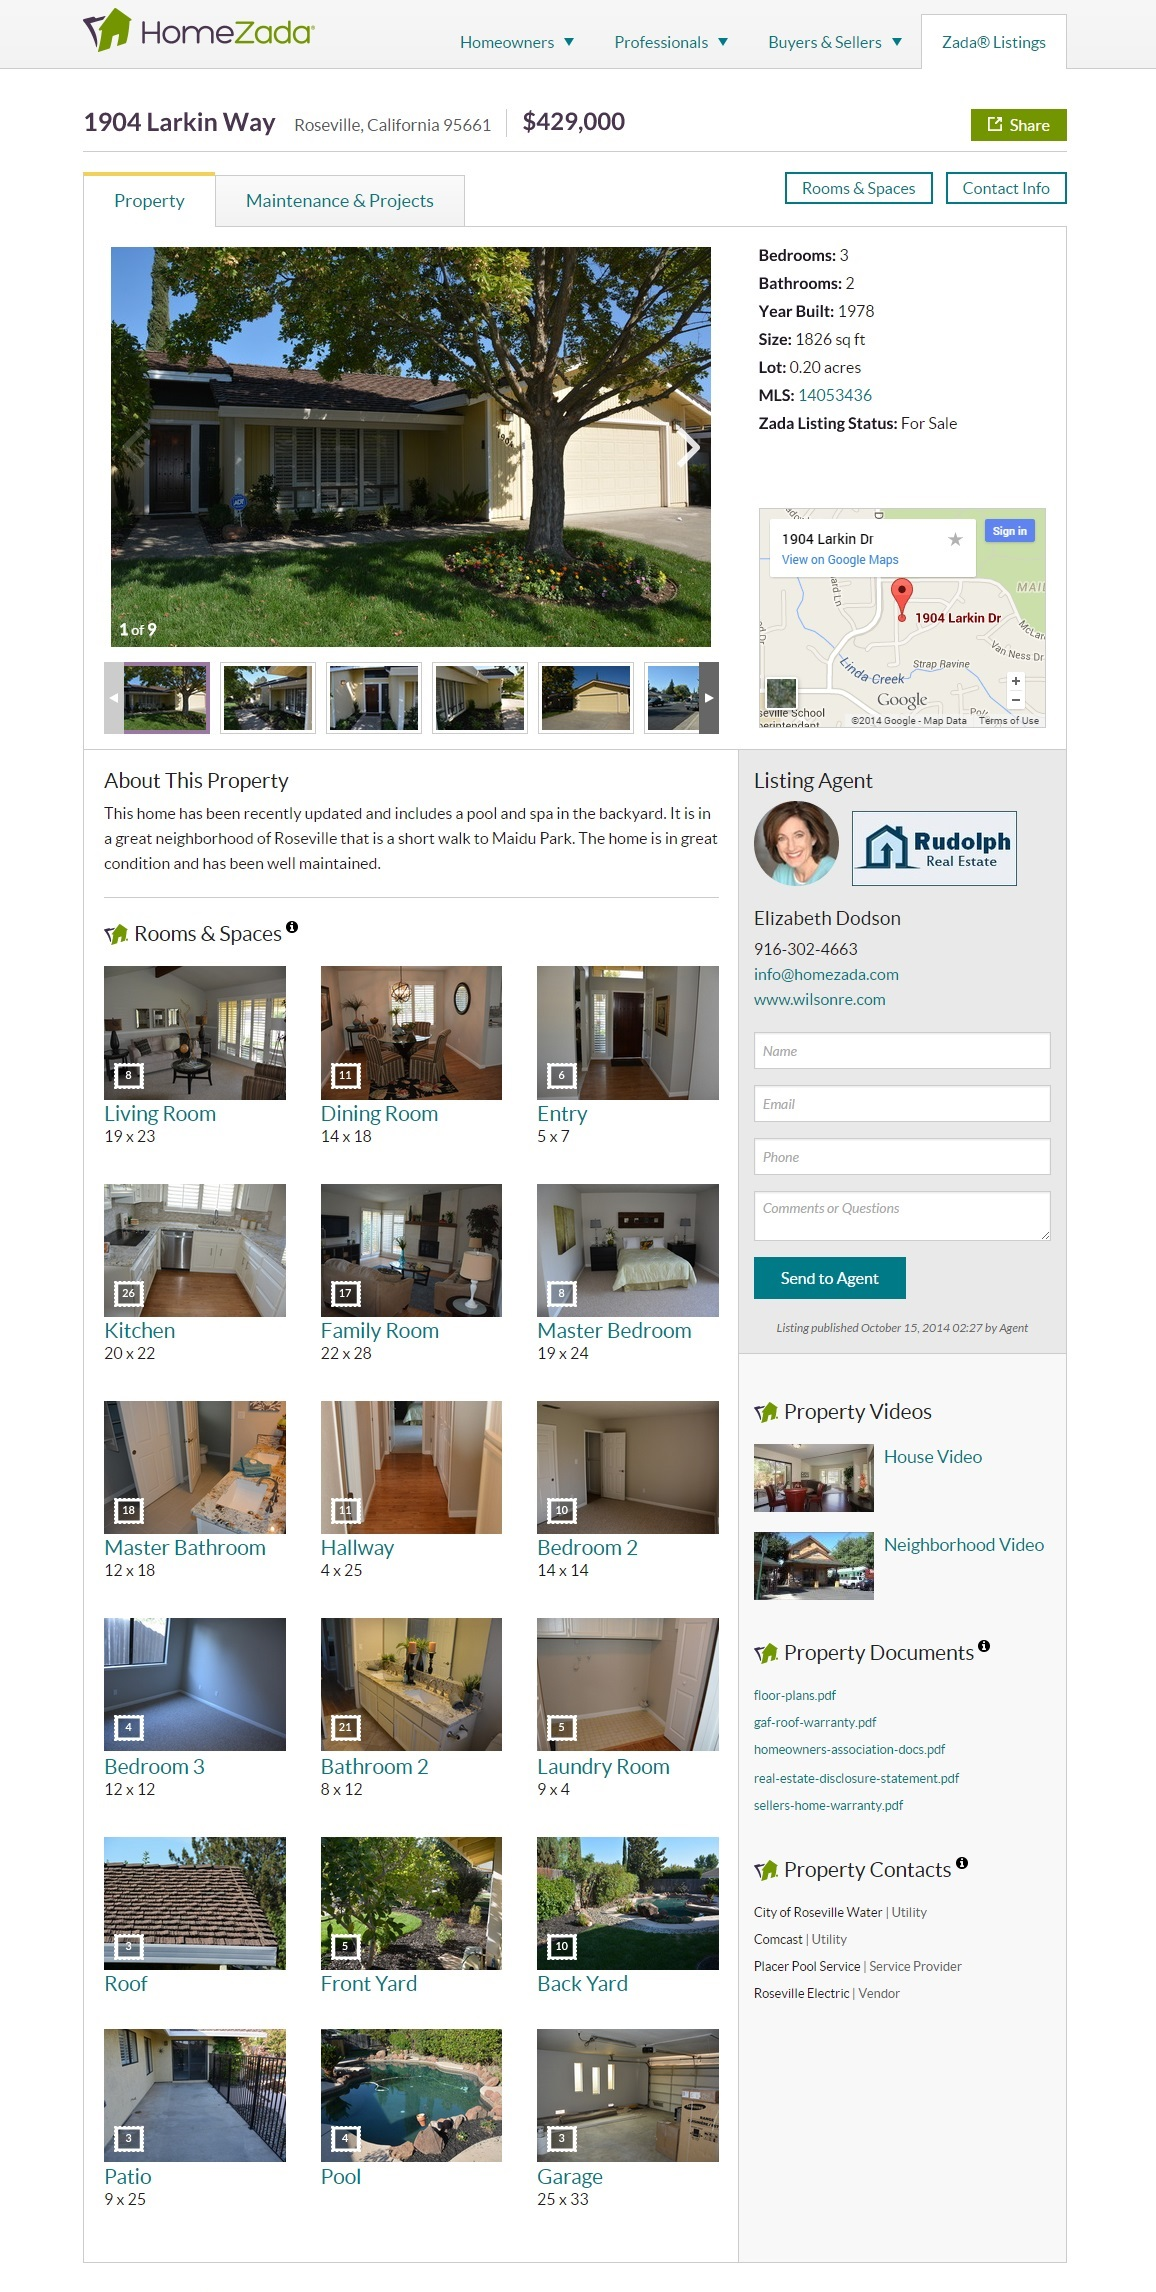 Zada Listing3 - room by room tour - videos - and documents of a home for sale